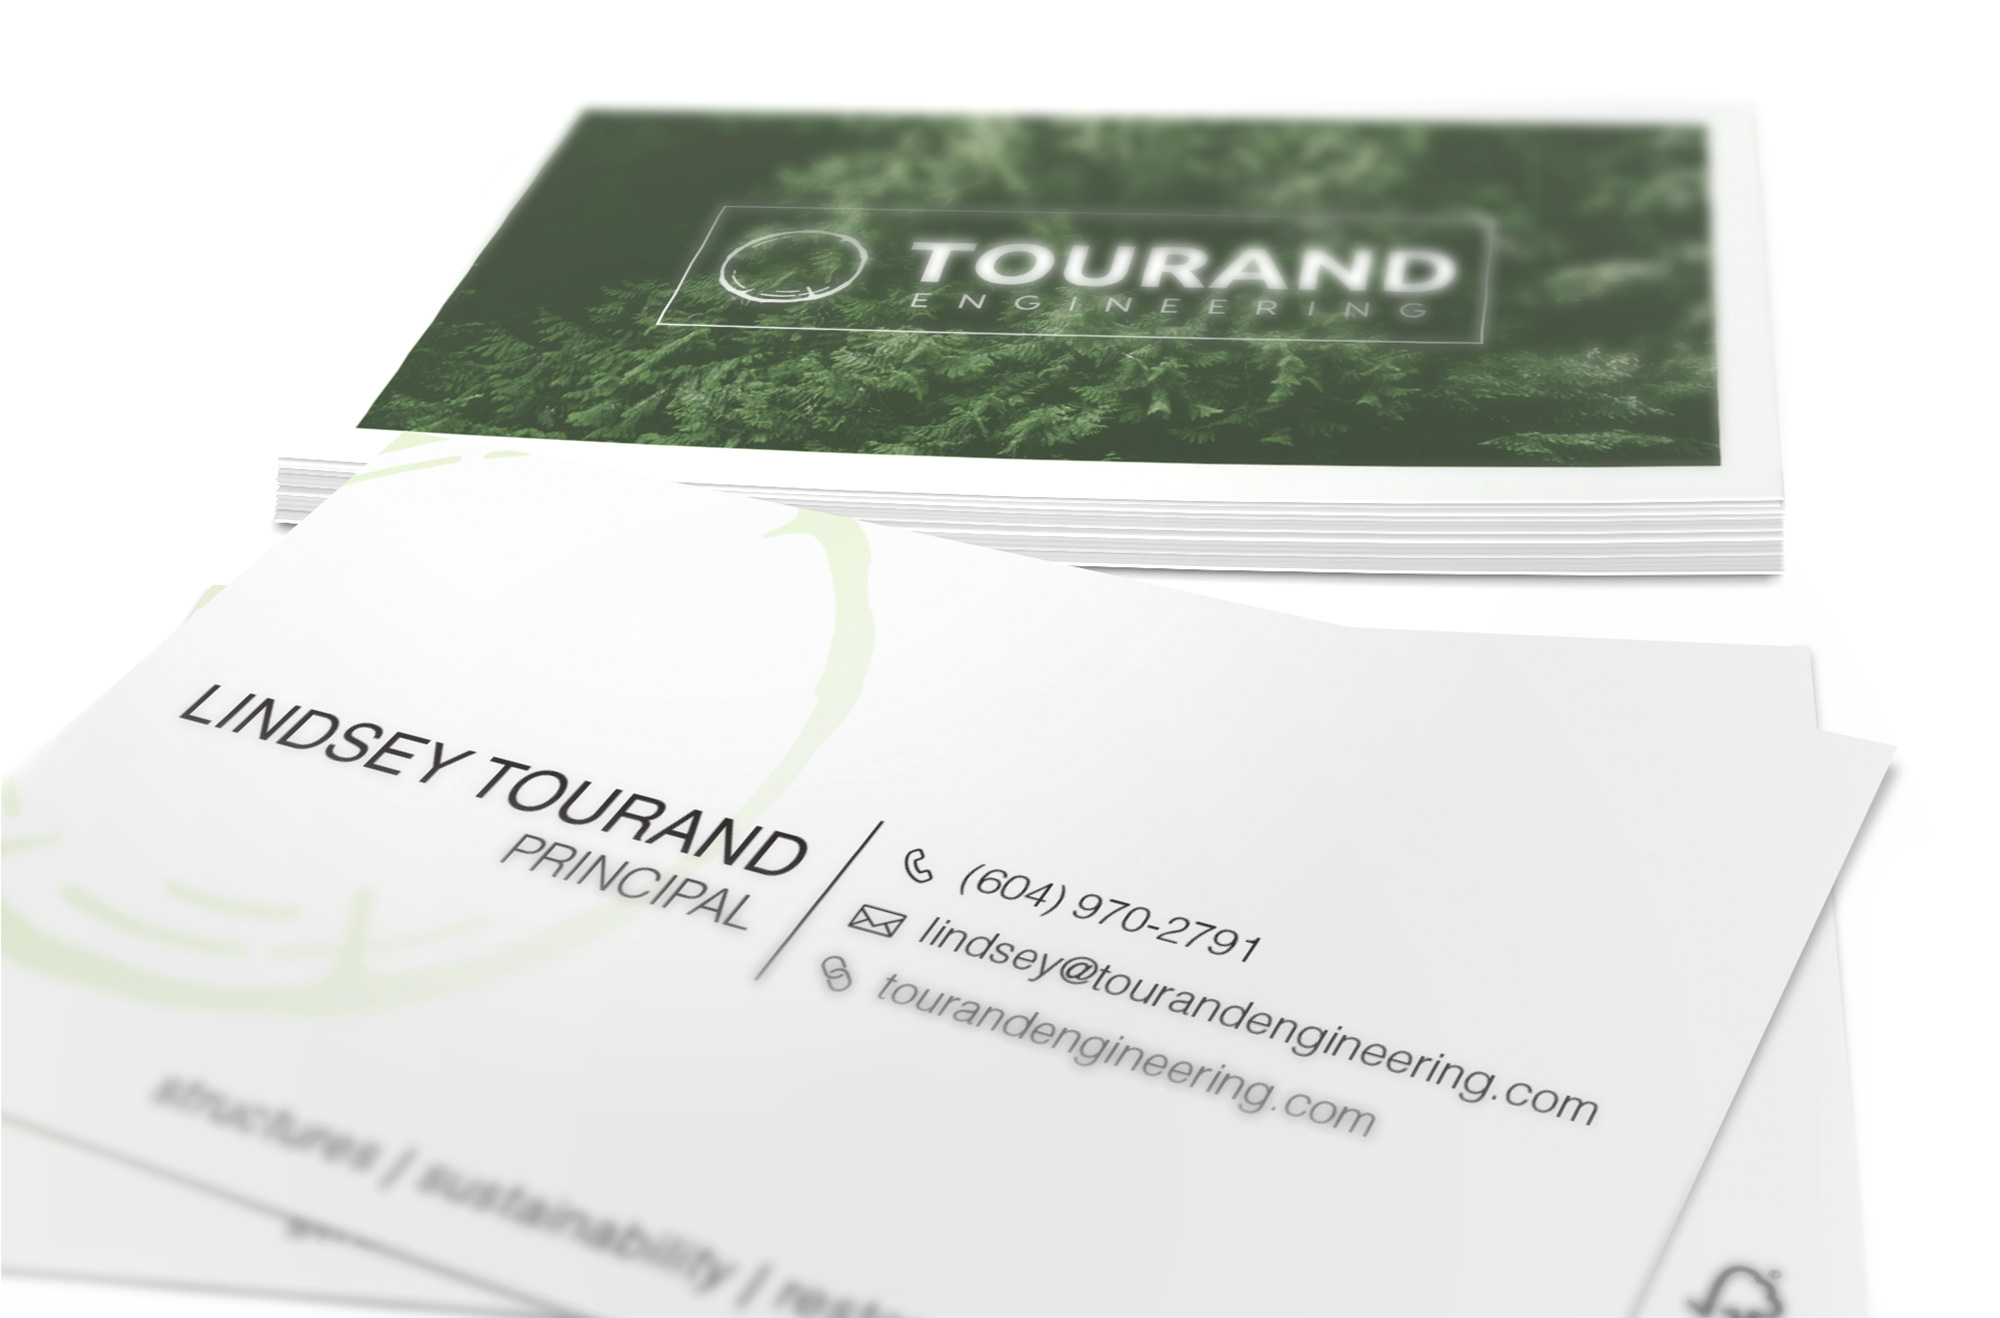 Sample image of business card design for Tourand Engineering.